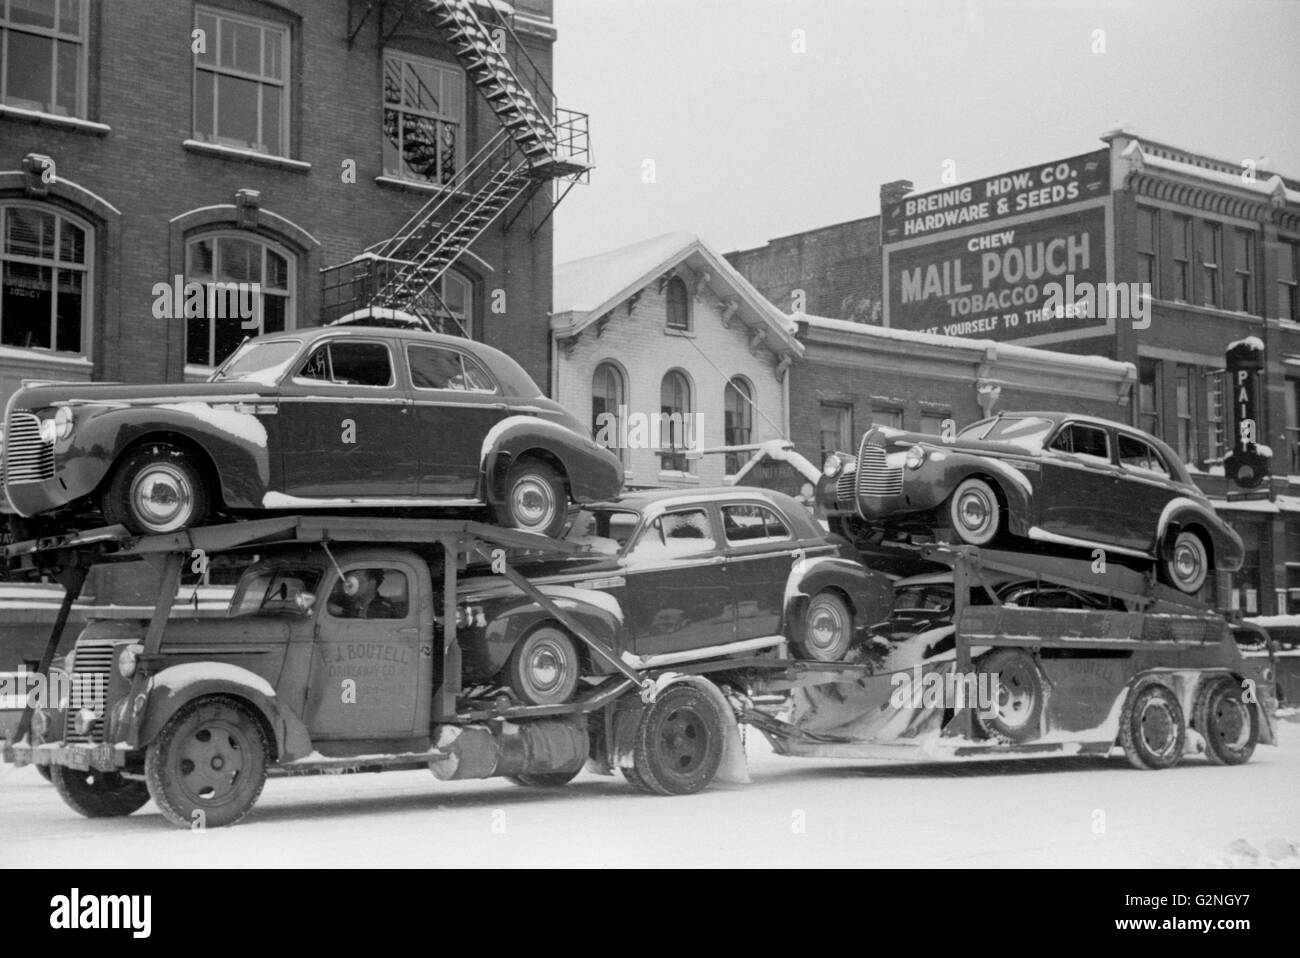 Auto-Transport, Chillicothe, Ohio, USA, Arthur Rothstein für Farm Security Administration (FSA), Februar 1940 Stockbild